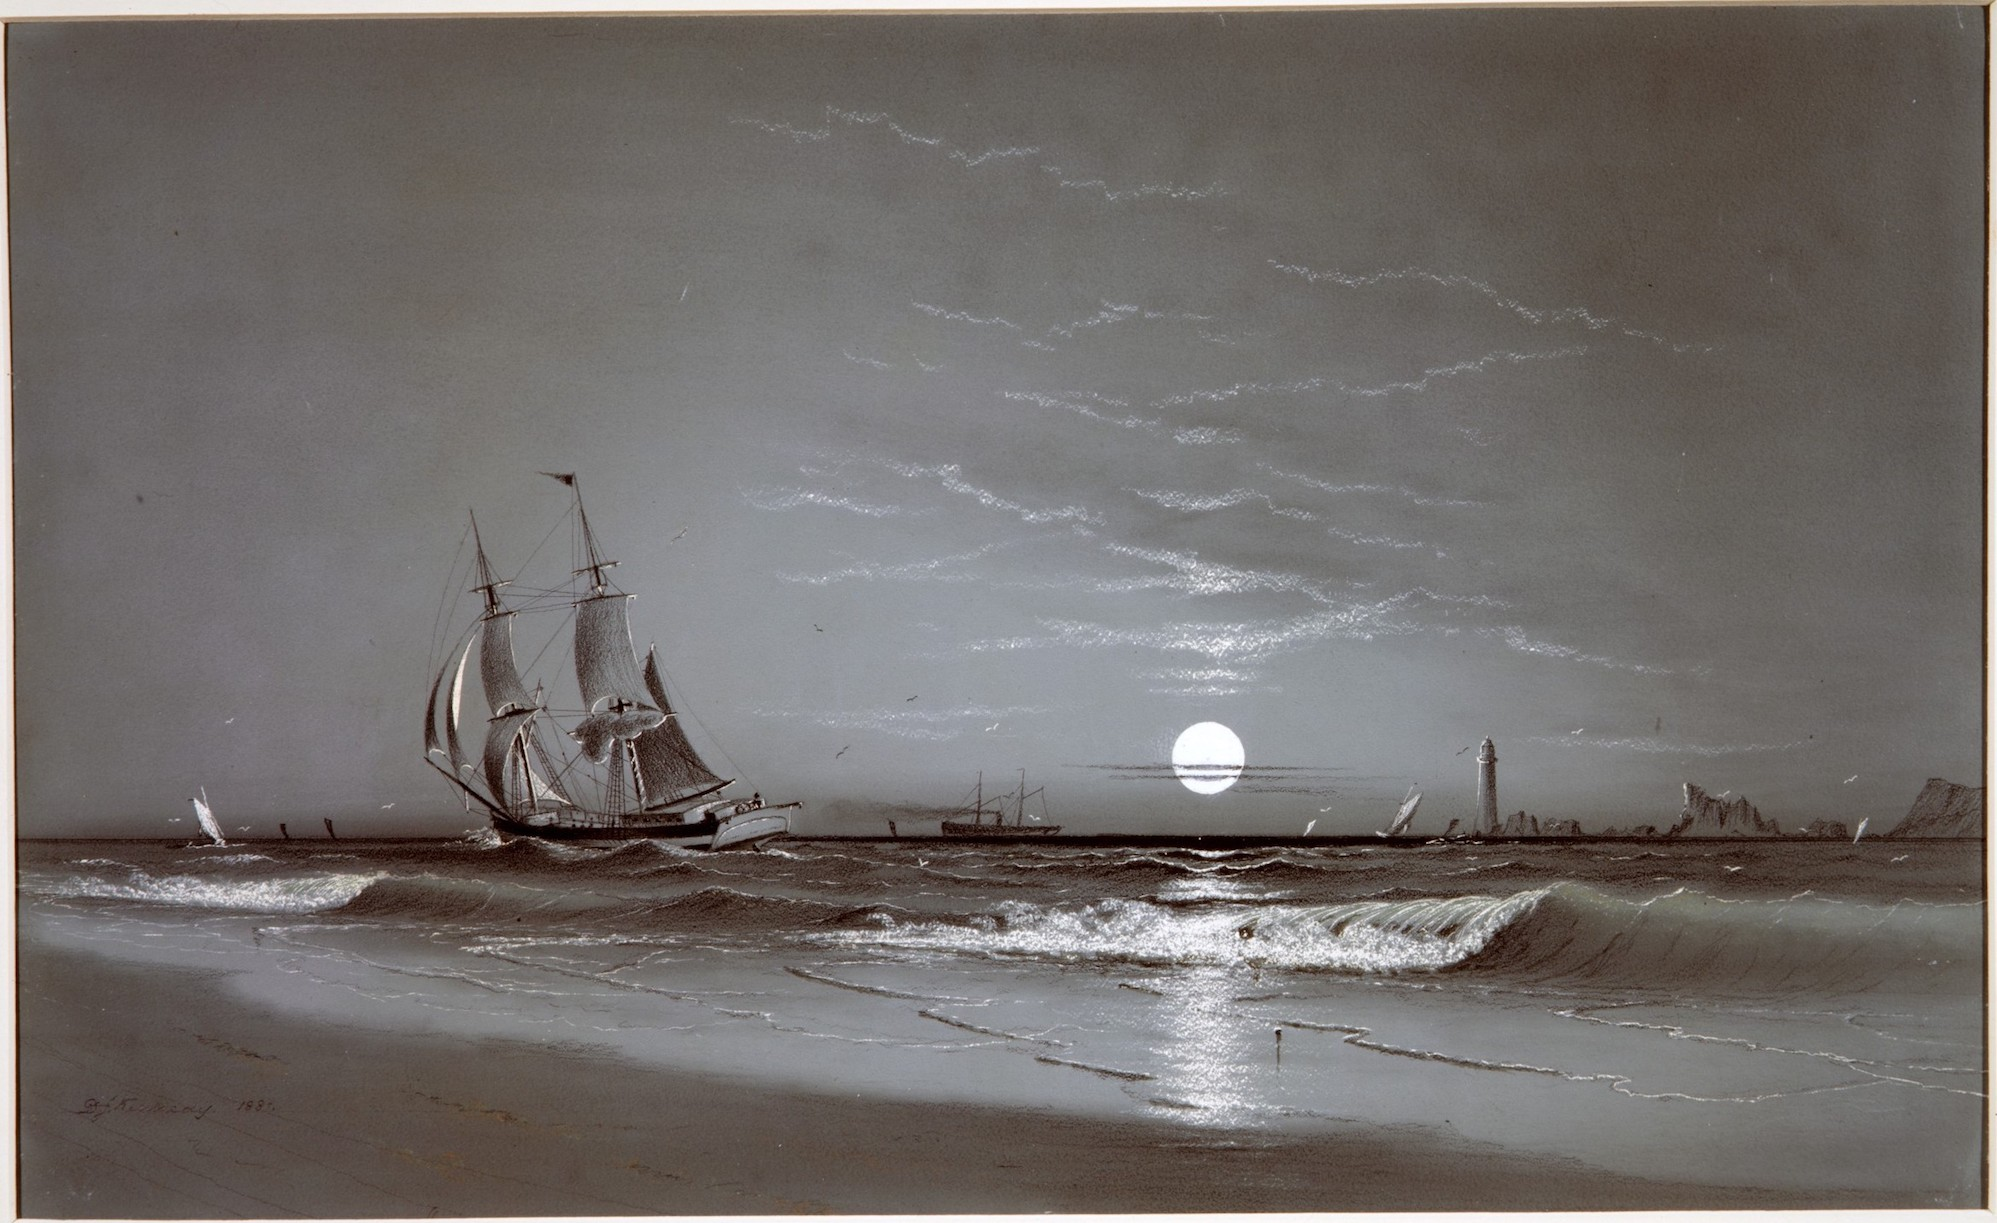 Entrance to Harbor—Moonlight